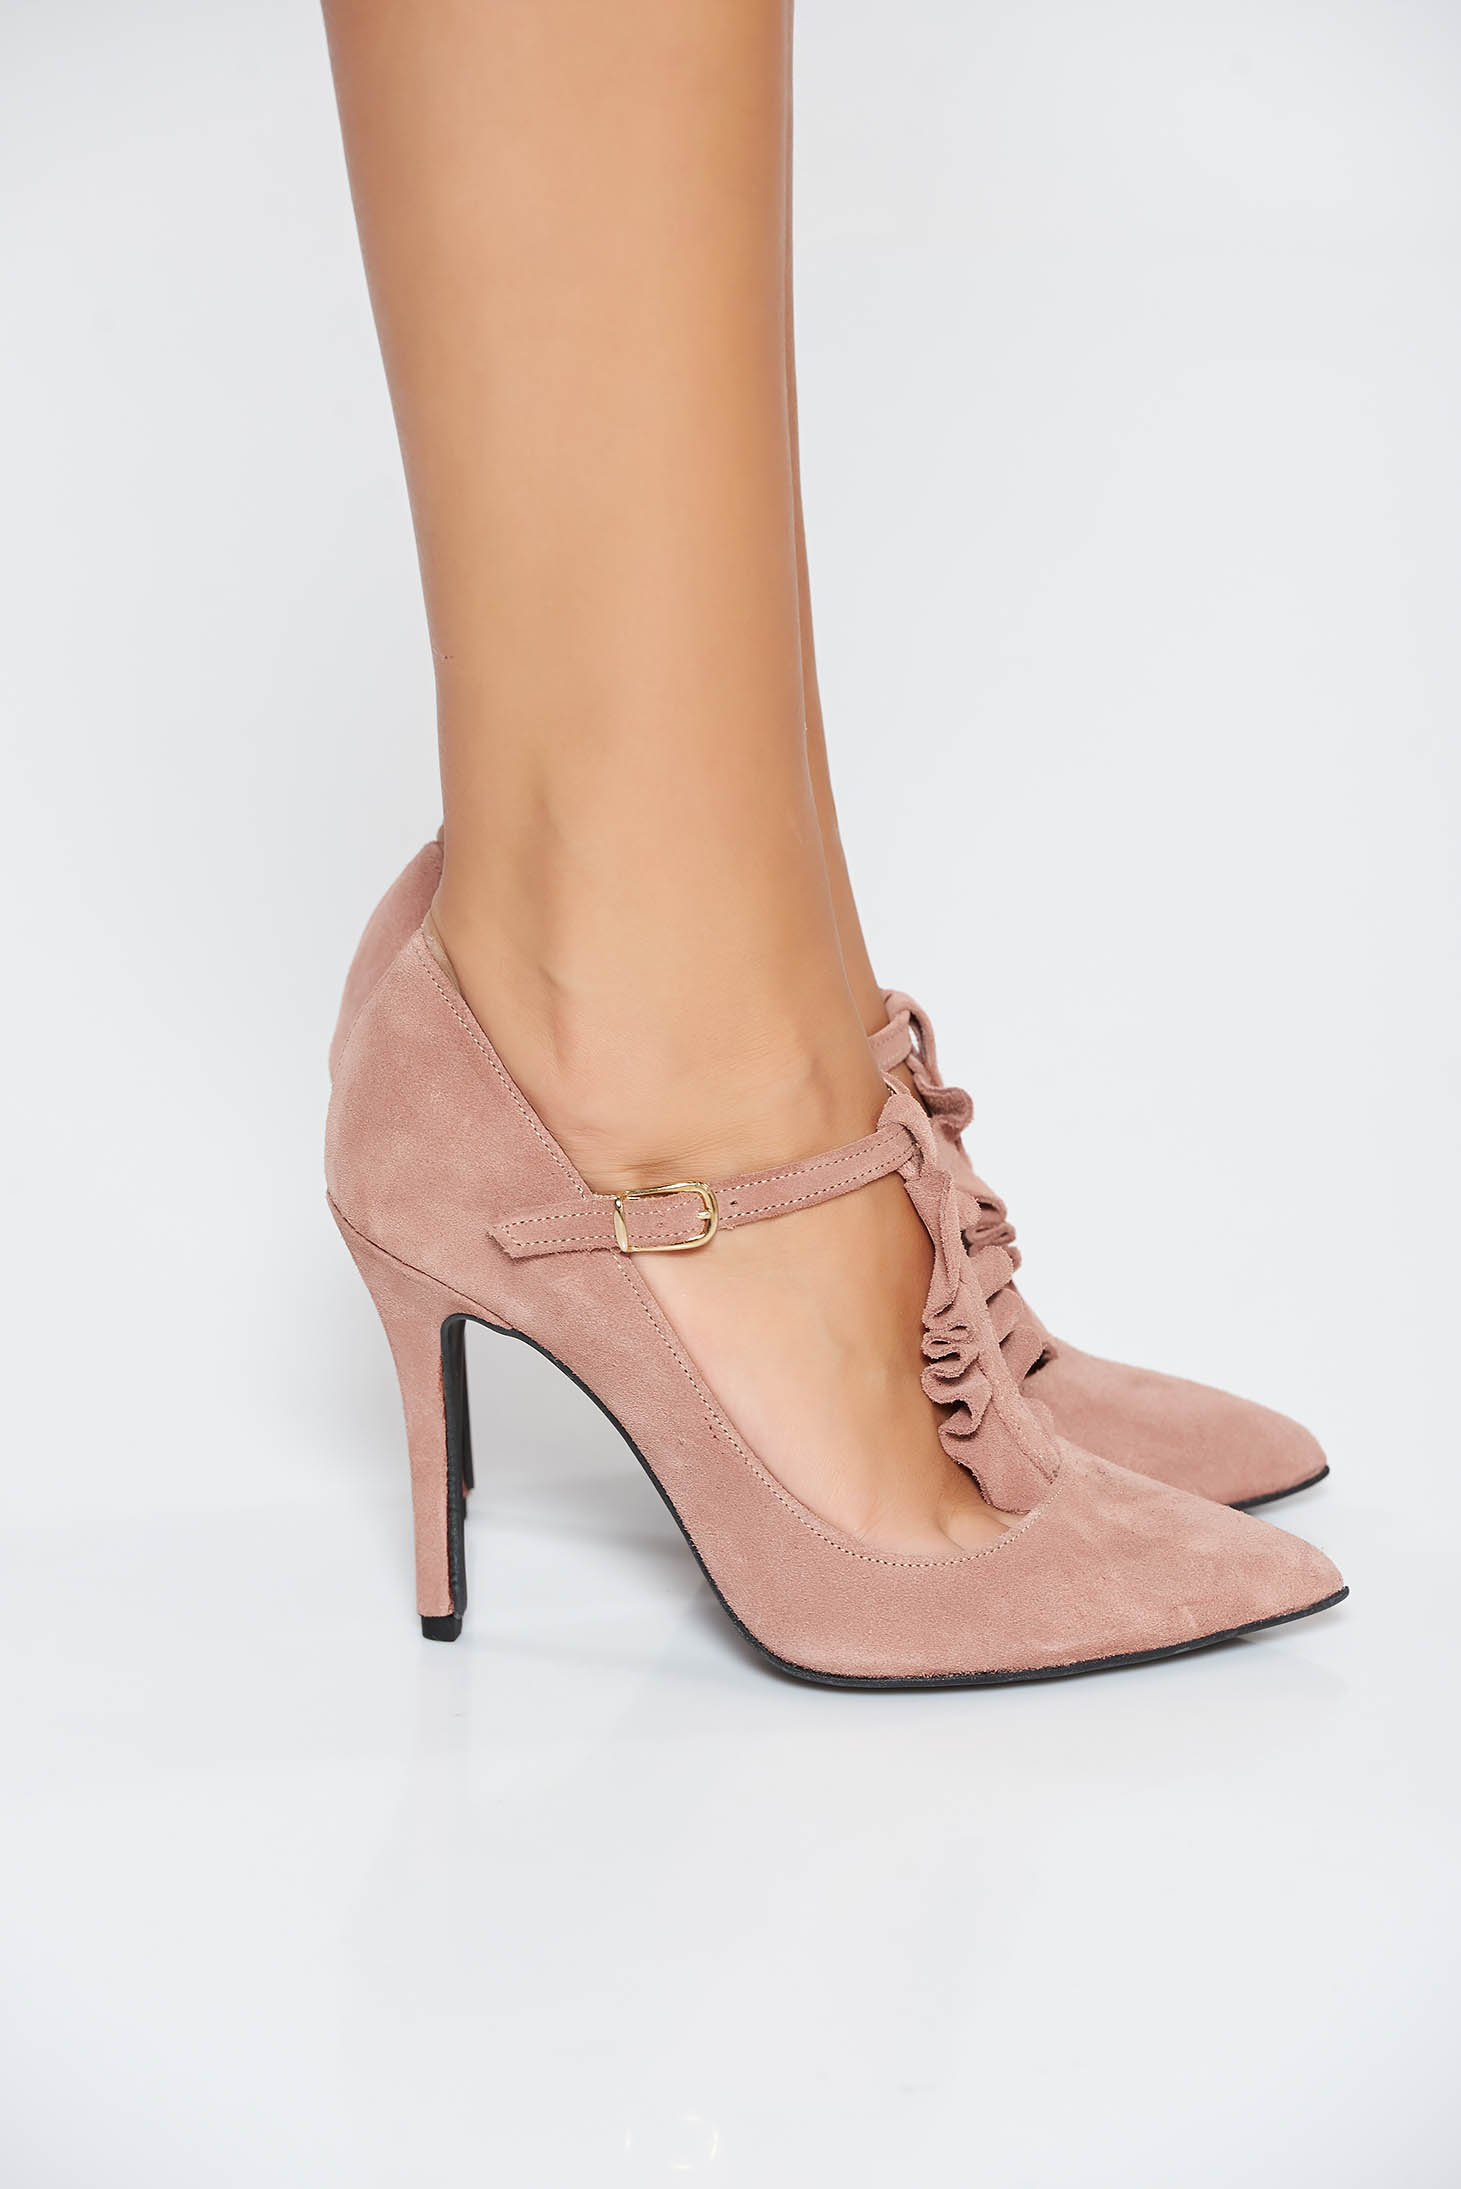 missq-rosa-elegant-shoes-natural-leather-with-high-S035225-1-390205.jpg 828e8556c40